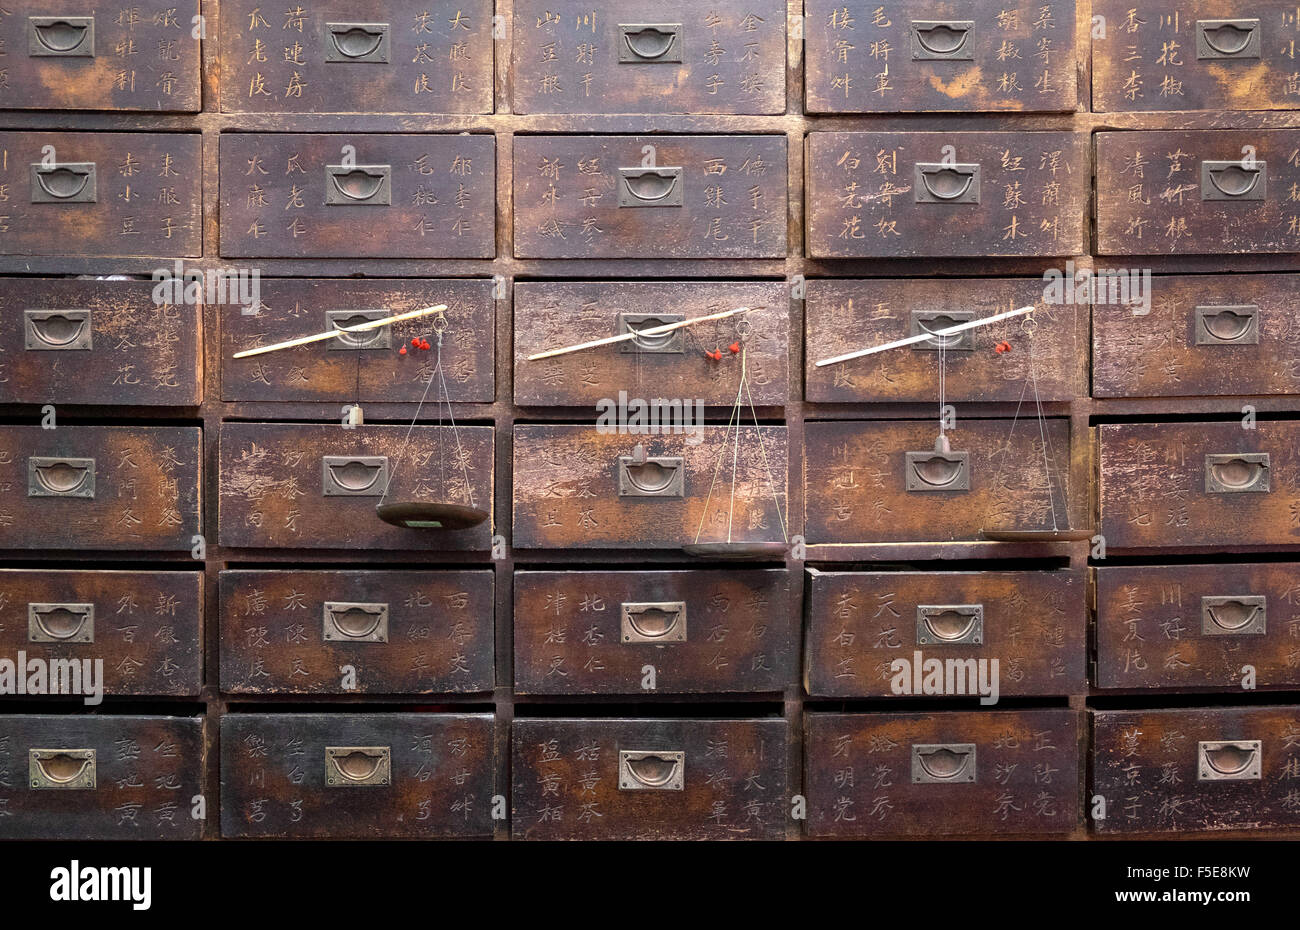 Old wooden drawers and scales in a Chinese pharmacy in  Melaka (Malacca), Malaysia, Southeast Asia, Asia - Stock Image